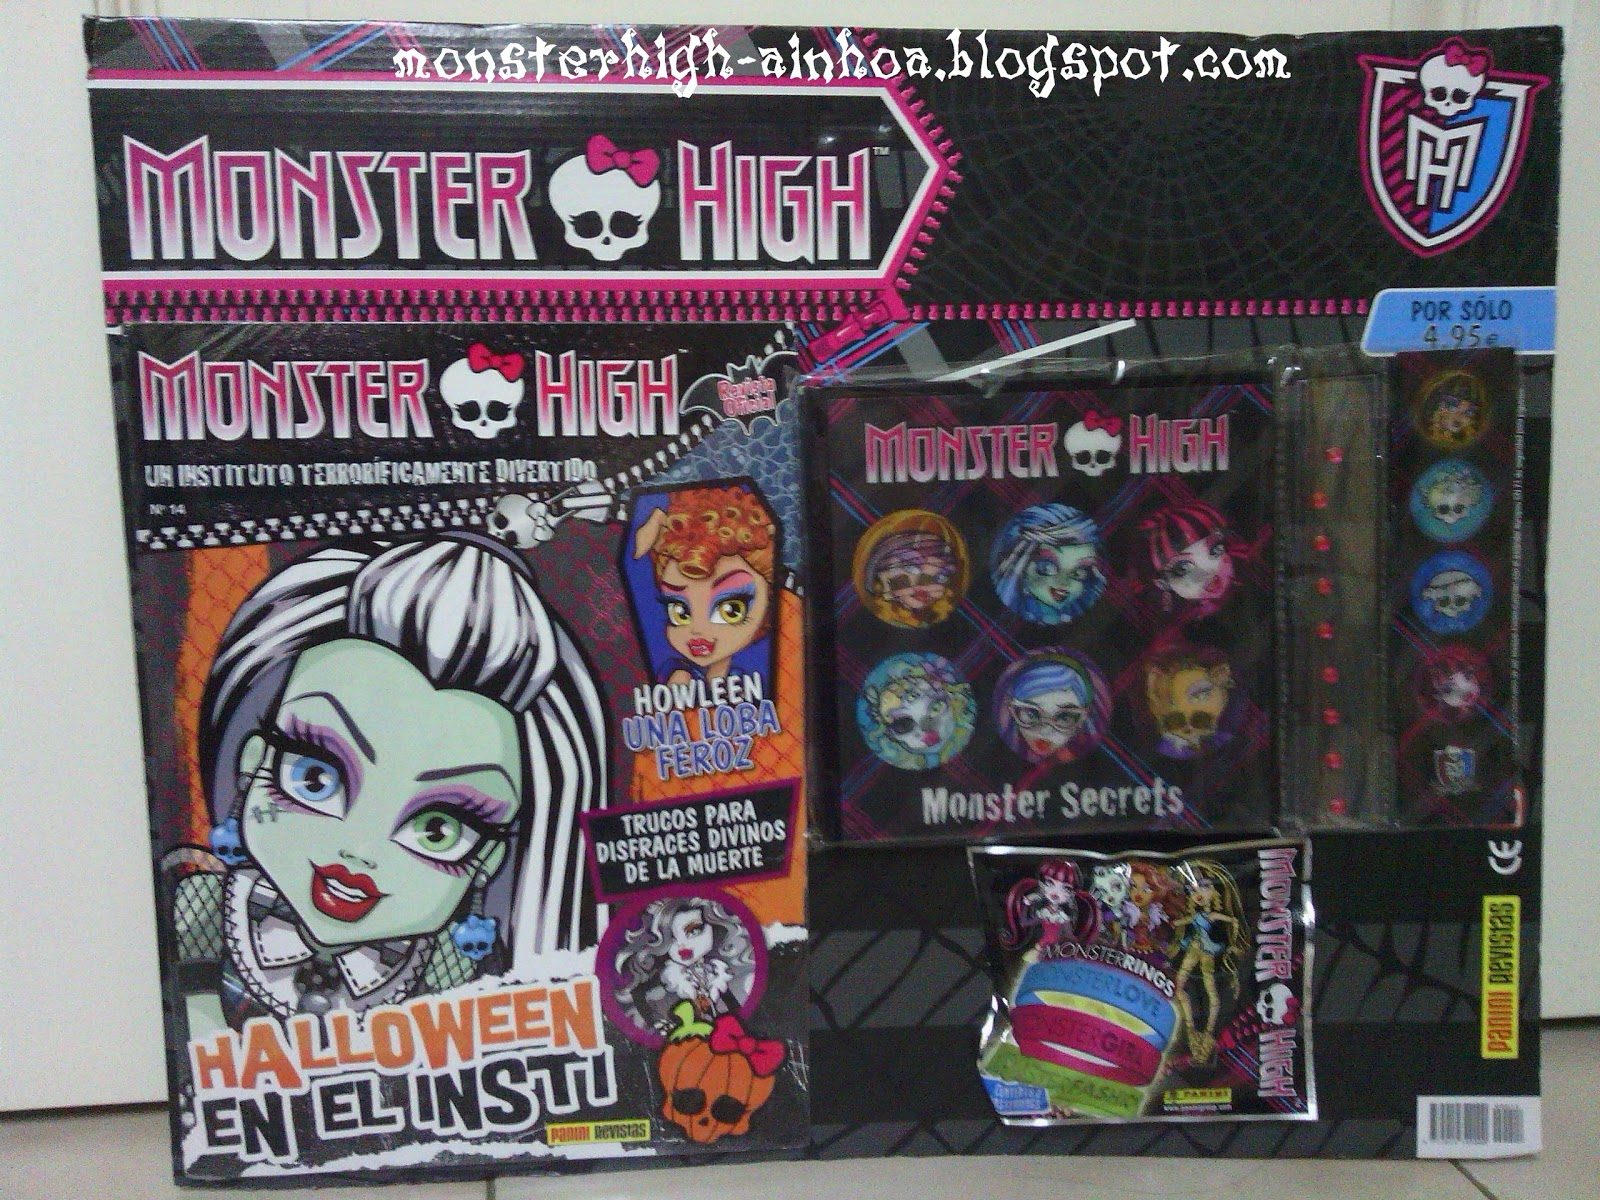 Monster High Libros Revista Monster High Nº14 Y Libro Especial Halloween